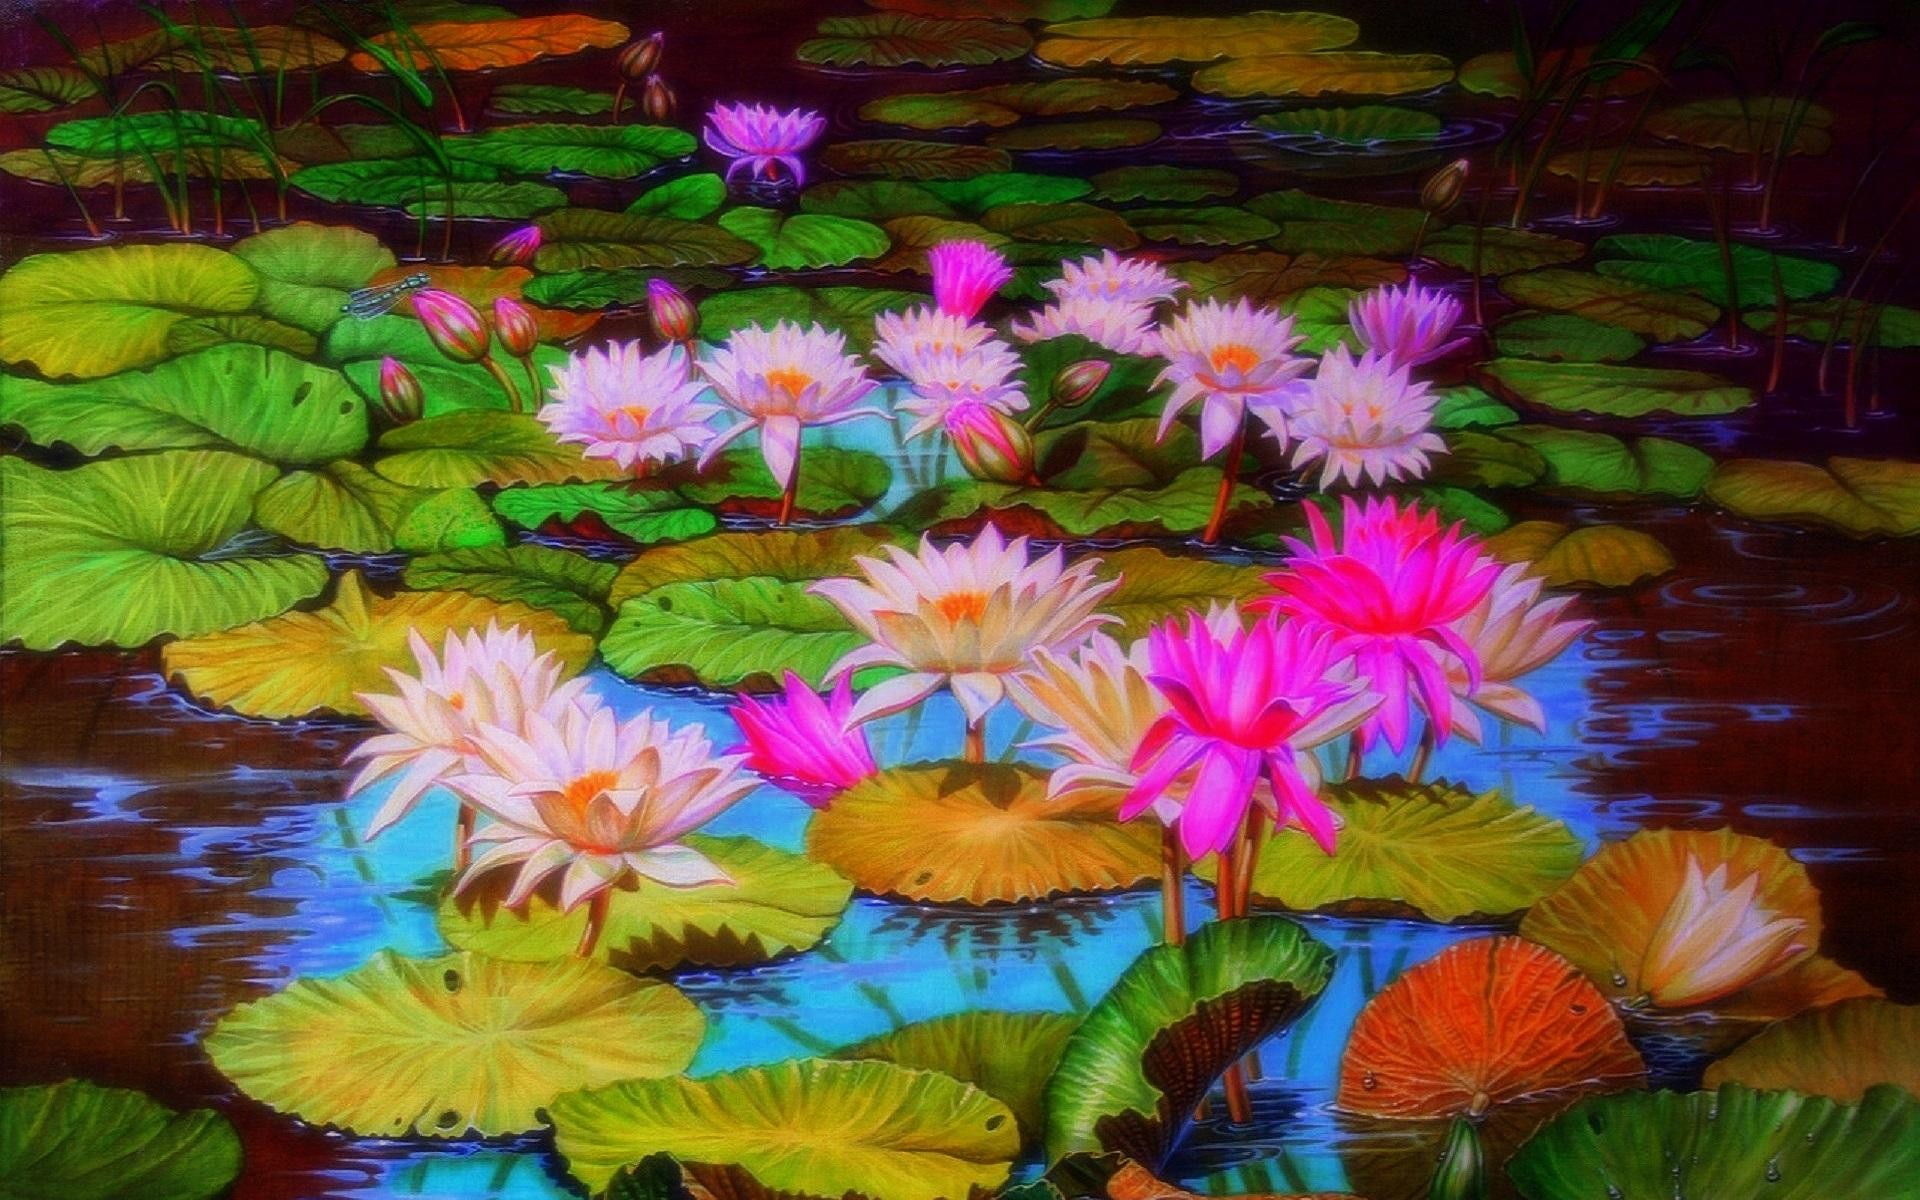 Pond With Lotus Flowers Hd Wallpaper Background Image 1920x1200